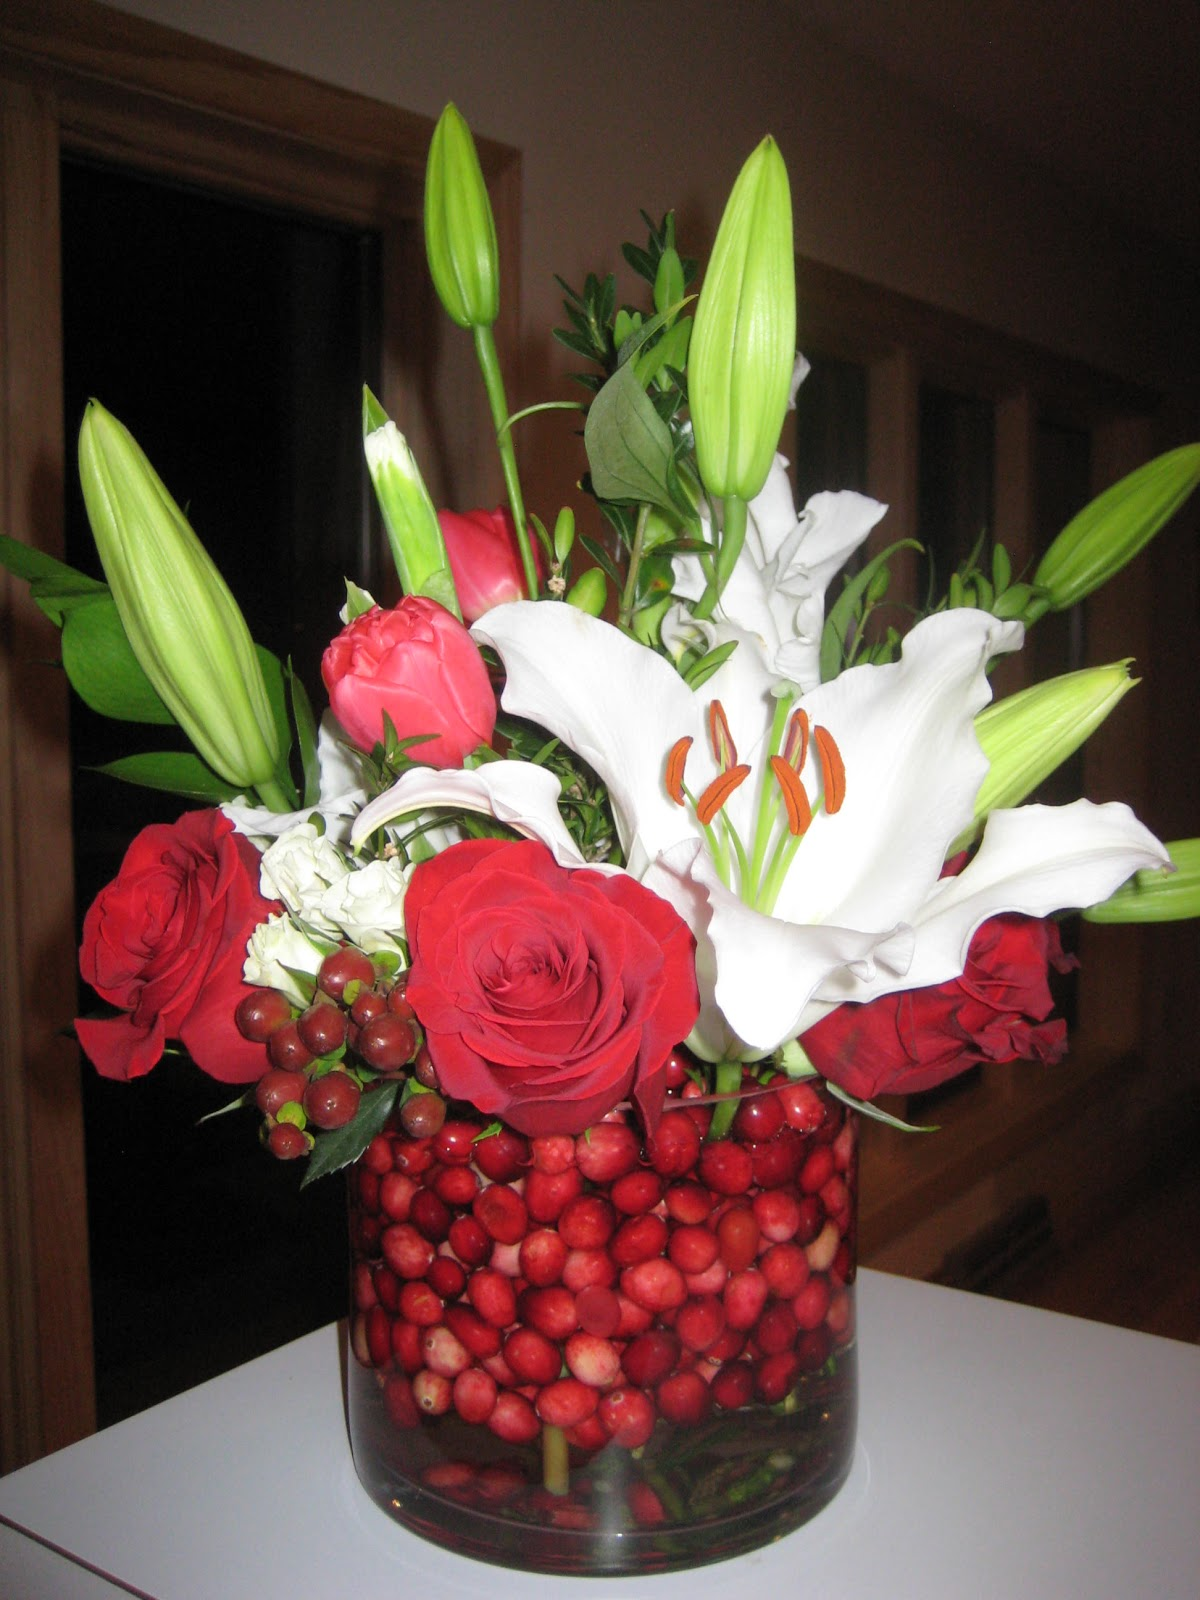 Allison phalen floral design november 2010 i used red roses burgundy calla lilies white oriental lilies and other seasonal flowers and greens to complete their designs it was the perfect kick off mightylinksfo Image collections